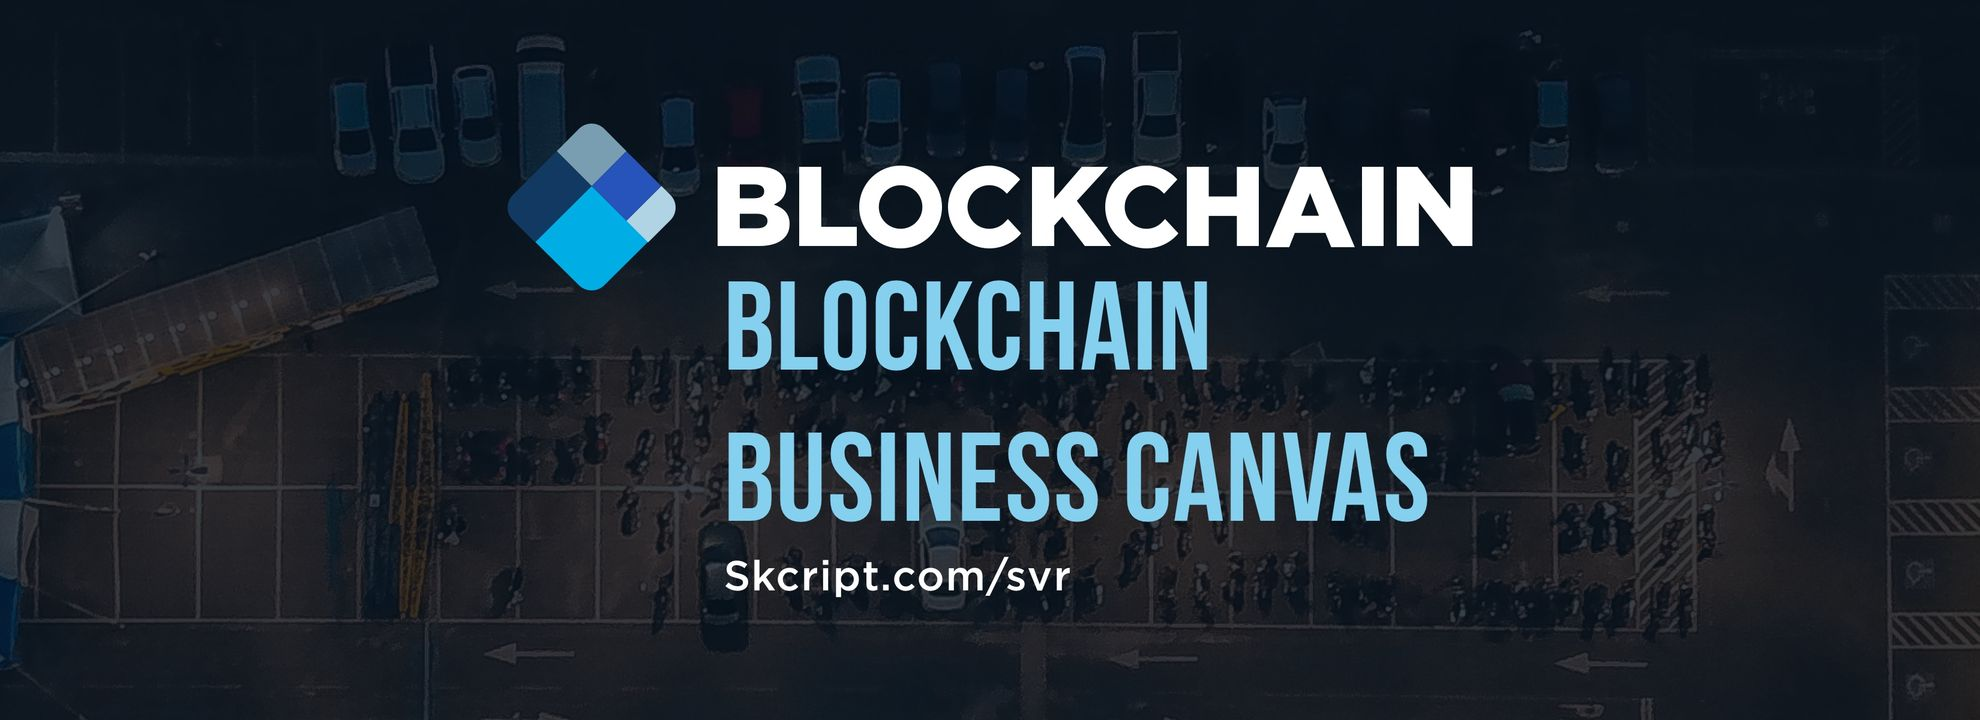 Introducing Blockchain Business Canvas. Evaluate your blockchain necessity with ease.